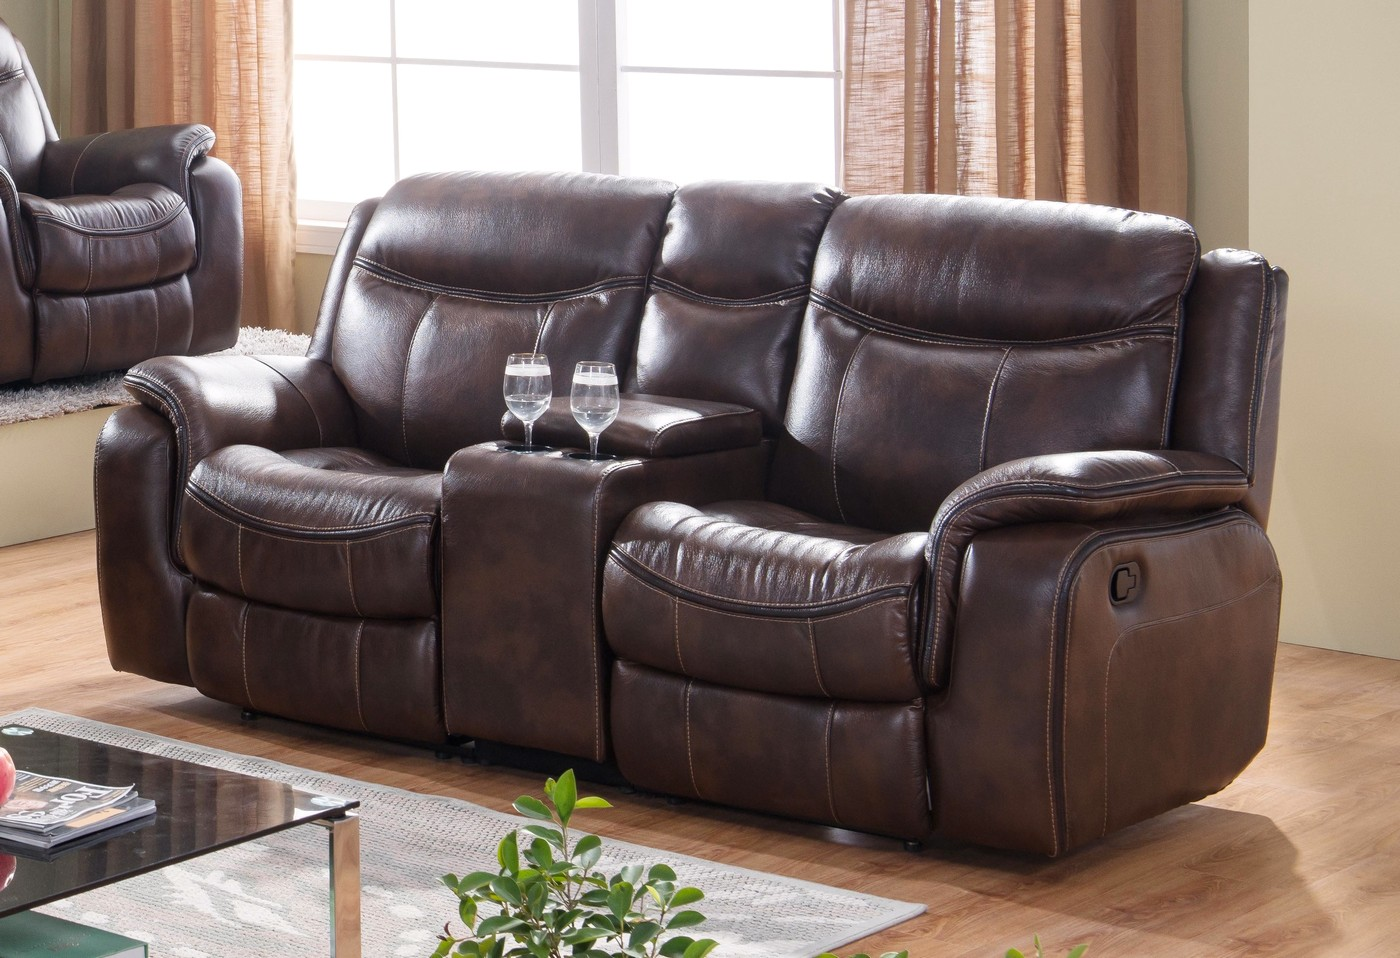 Braylon Black Reclining Sofa Loveseat Set In Leather Like Fabric